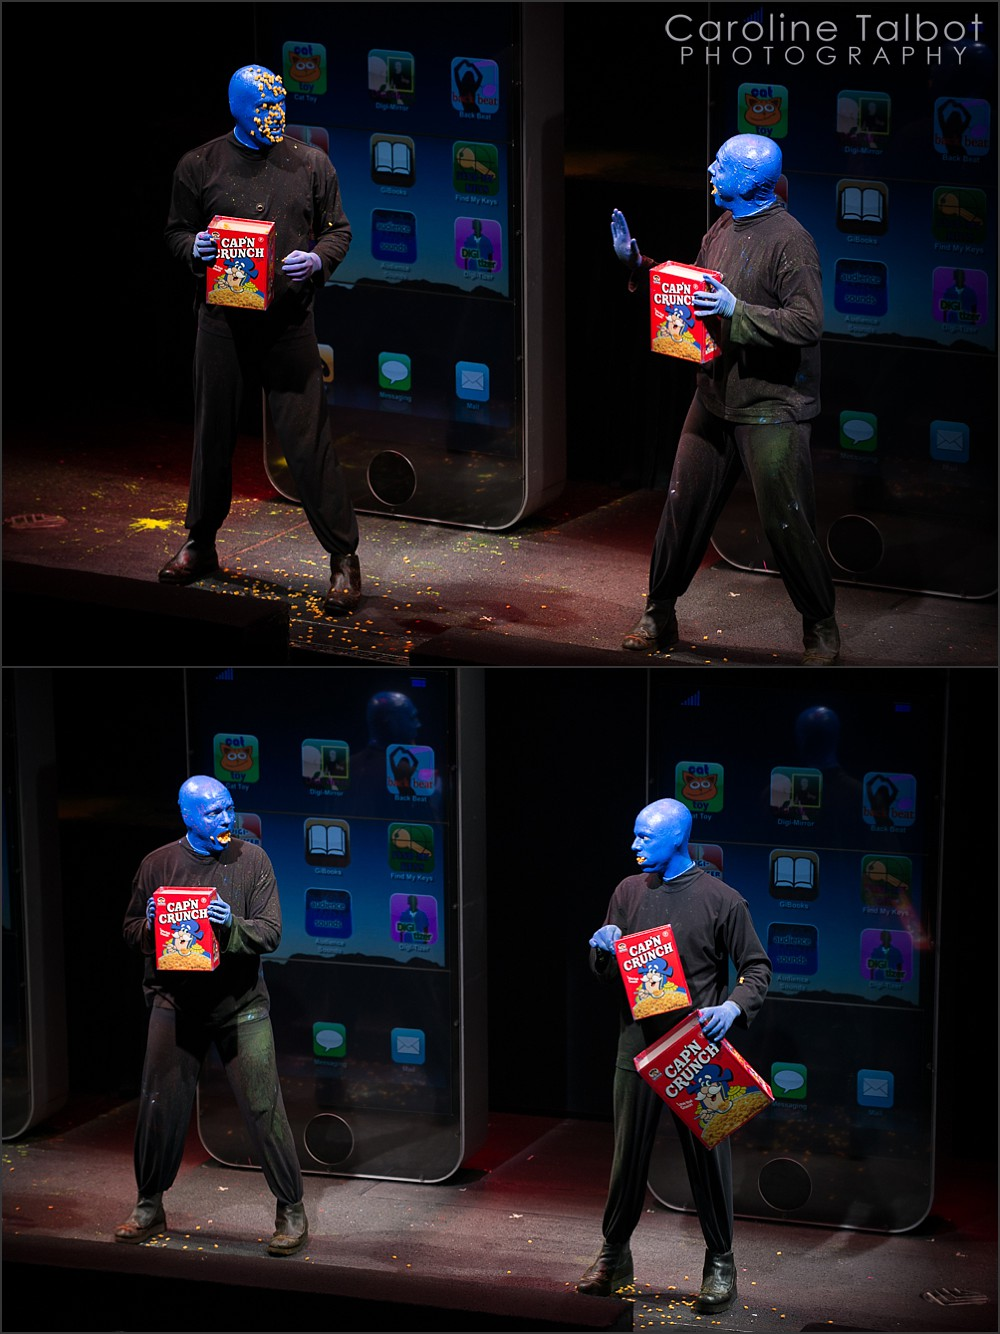 Brian Tavener, Greg Balla, Mike Brown, Blue Man Group Boston Captain Crunch